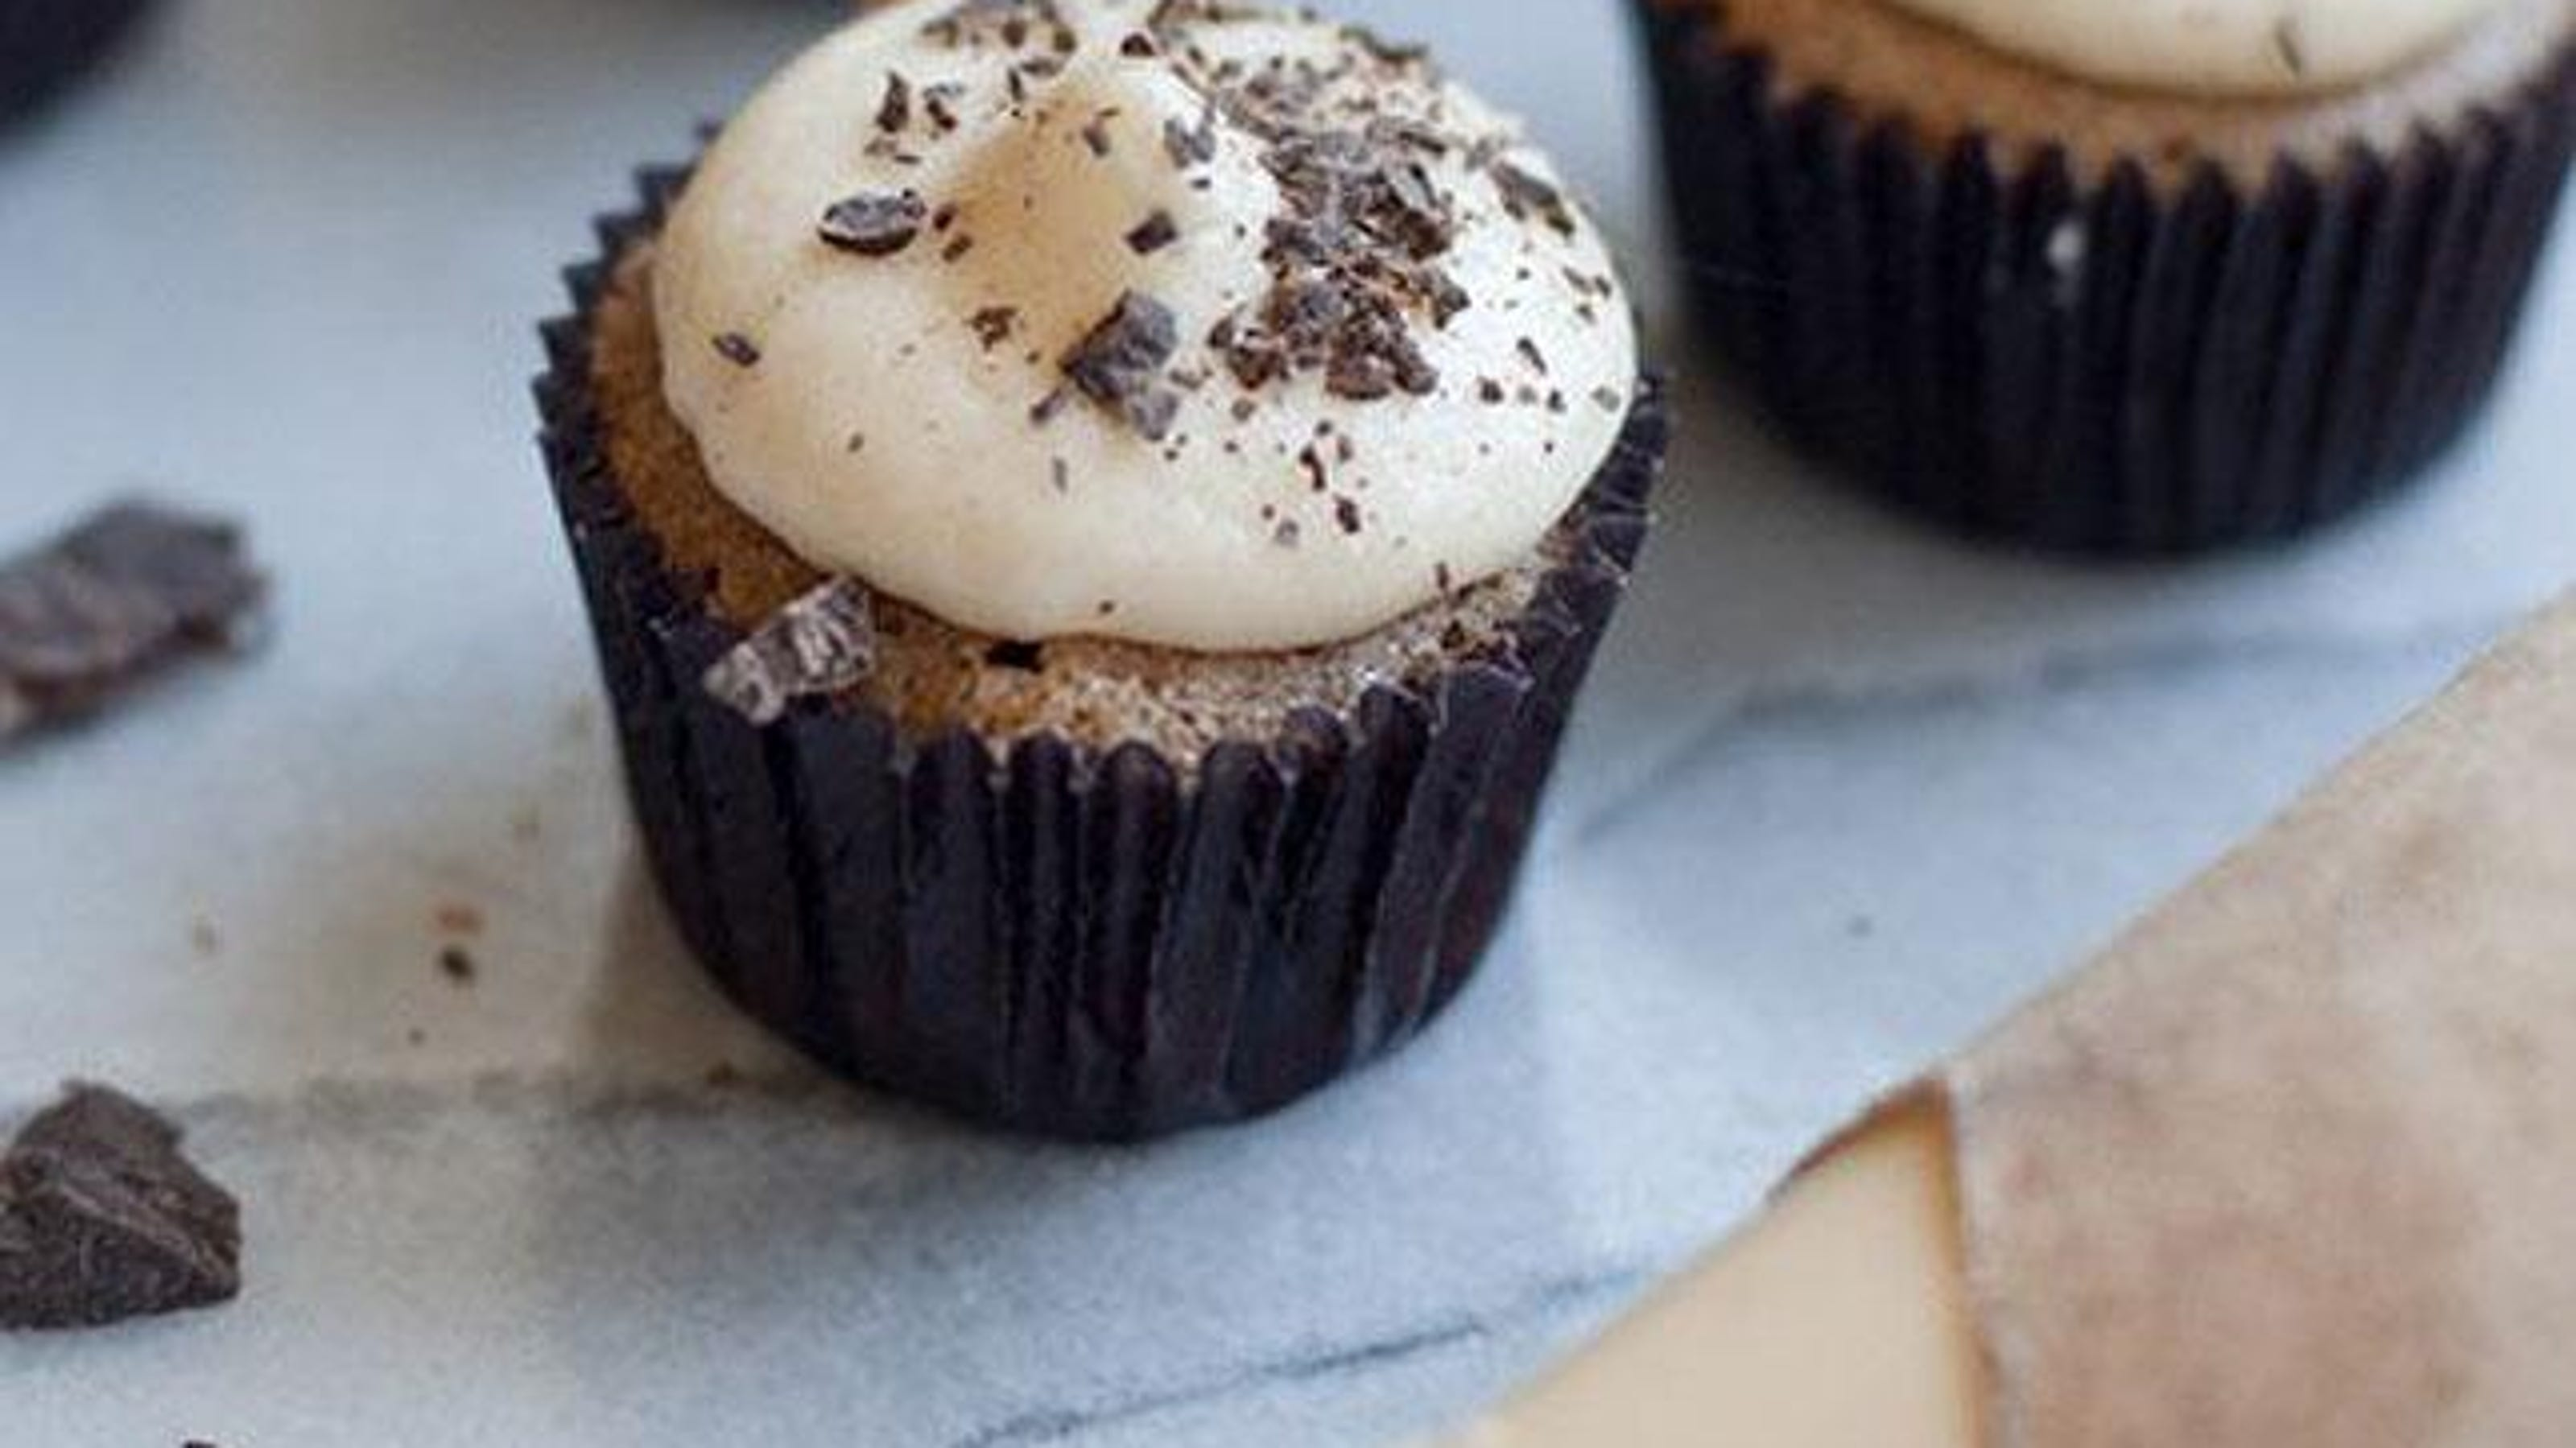 Gluten-free pumpkin cupcakes not scary at all